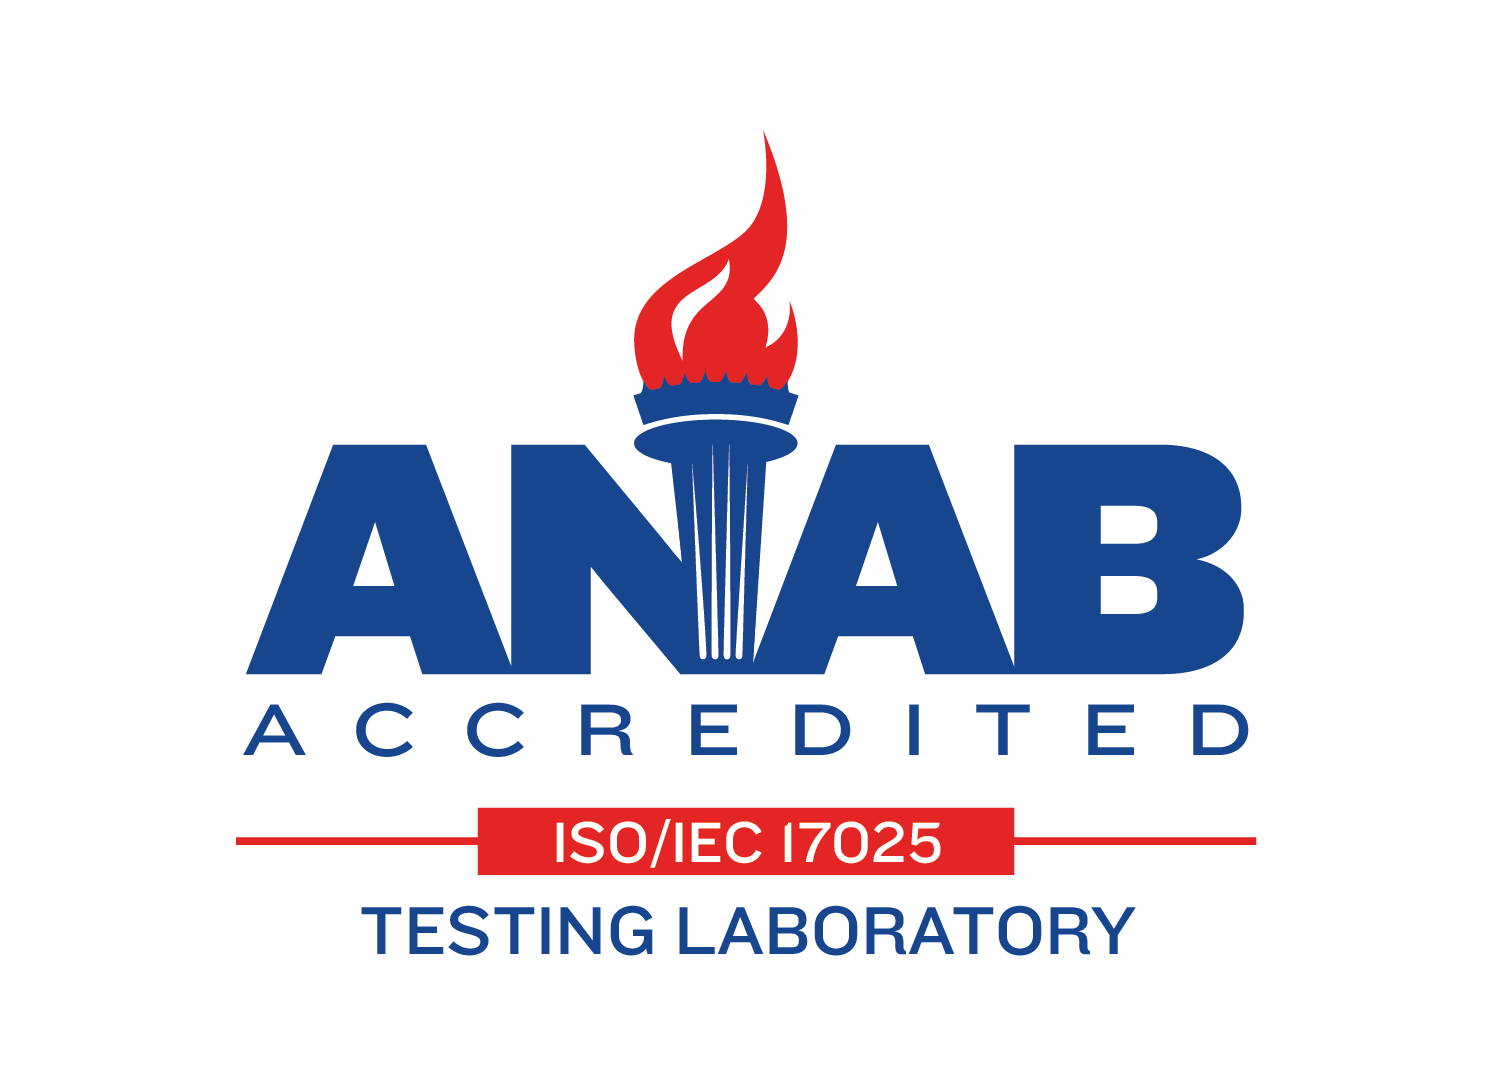 OUR ACCREDITING BODY